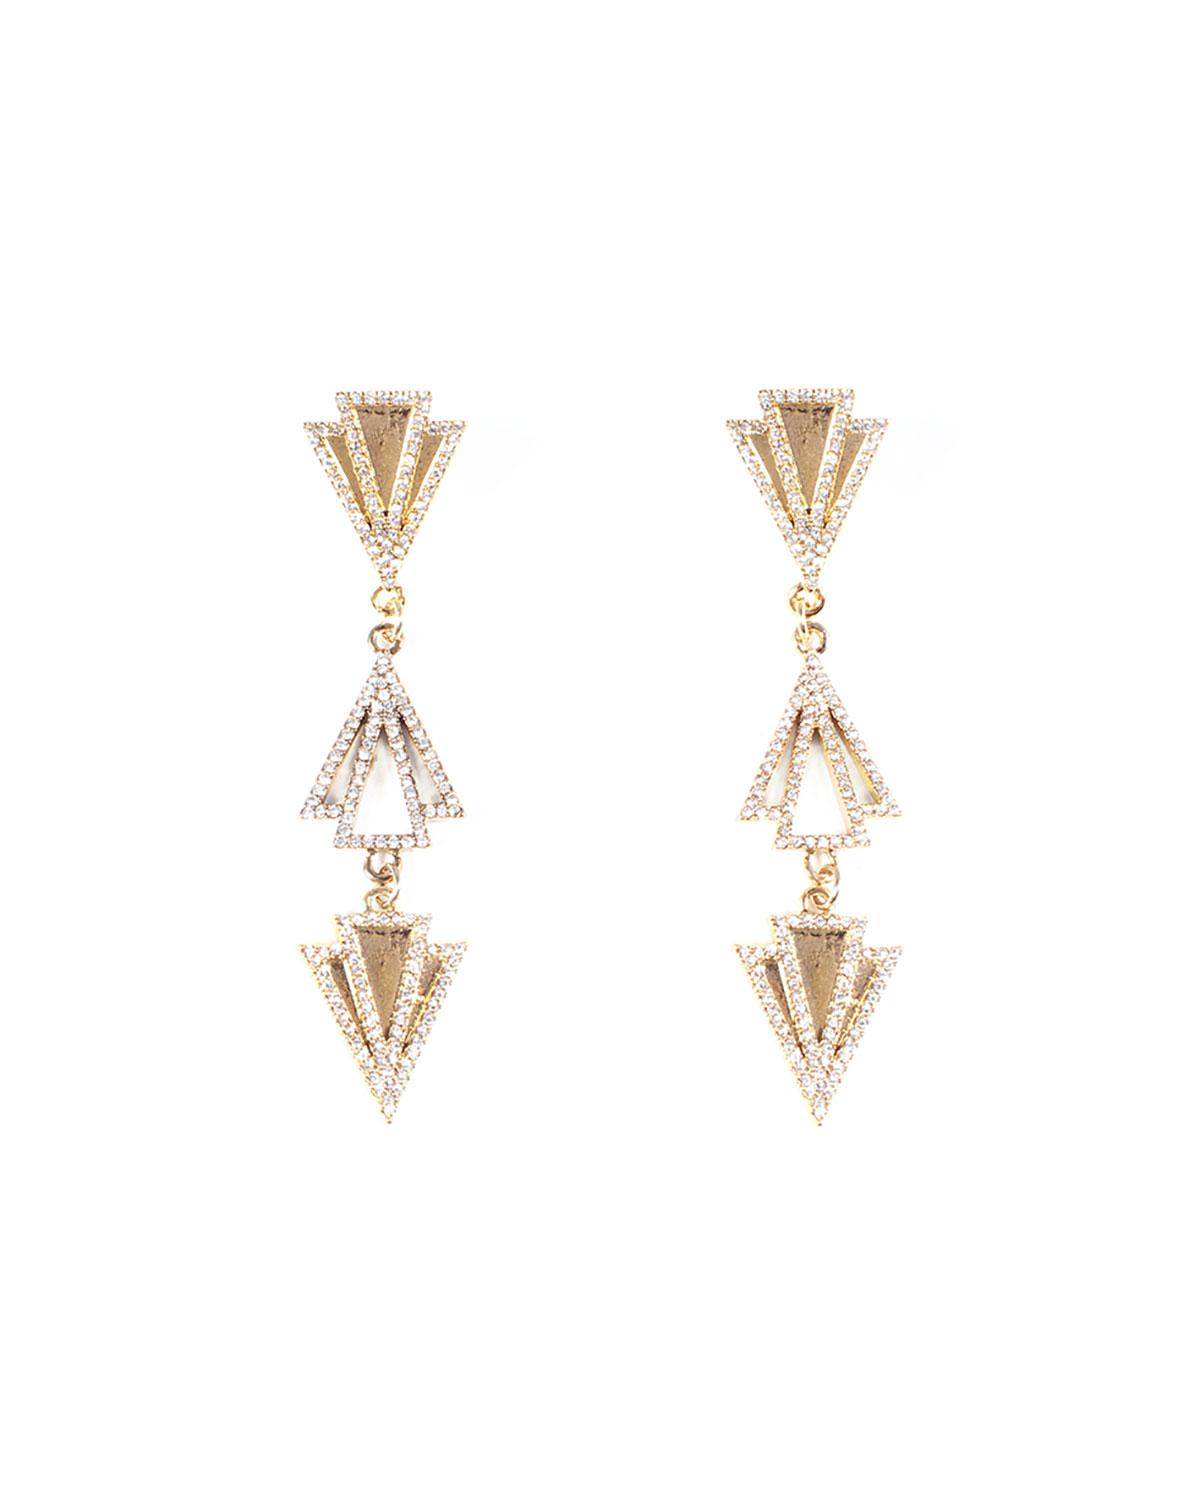 Lulu Frost Laumiere Drop Earrings w/ Crystals FSpcKm